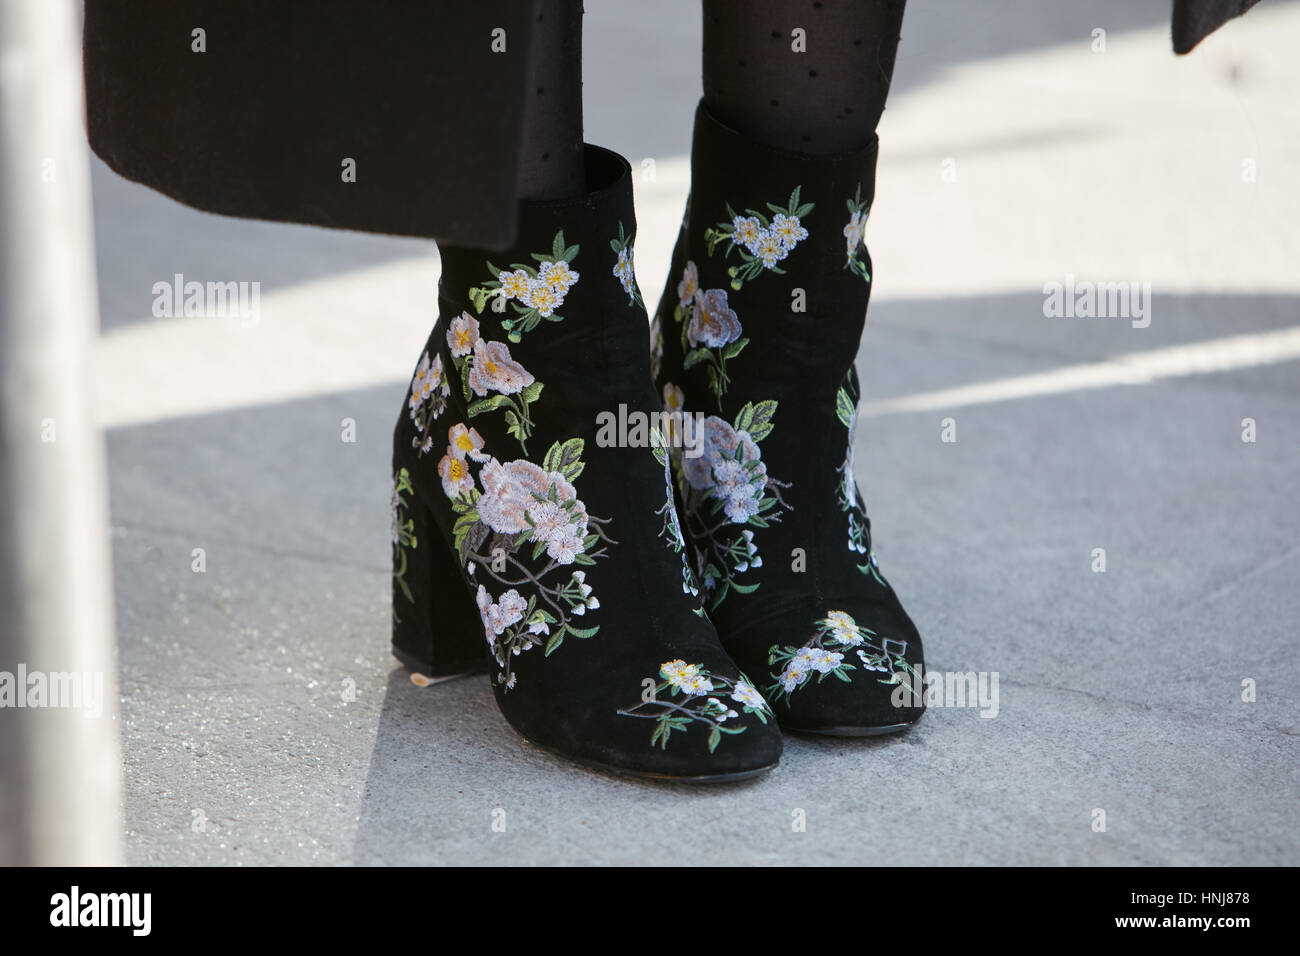 Woman with floral design shoes before Giorgio Armani fashion show, Milan Fashion Week street style on January 17, - Stock Image